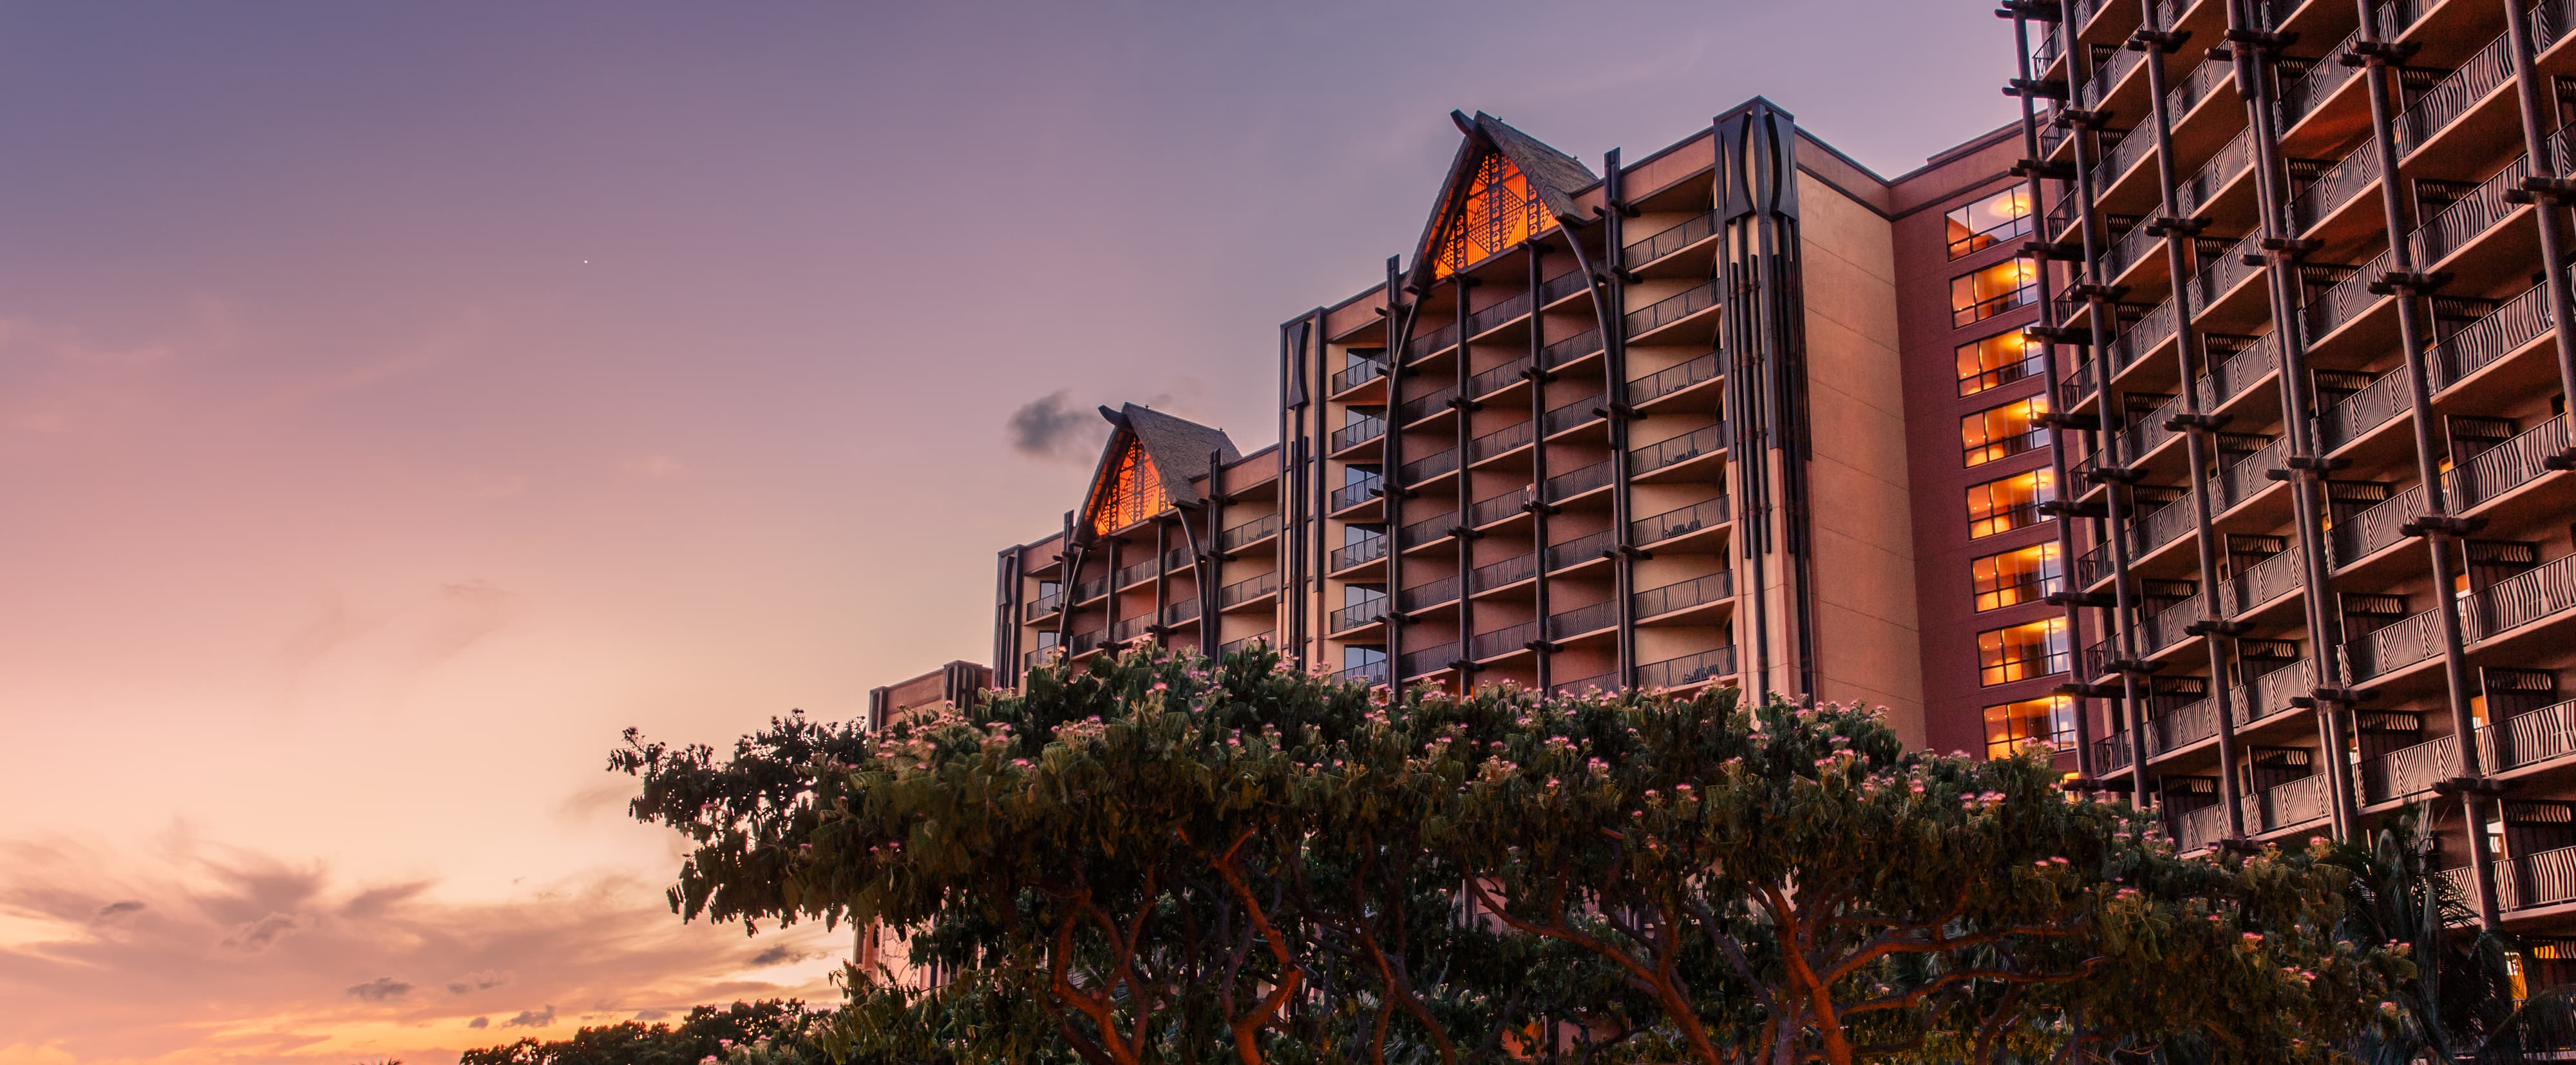 The towers of Aulani Resort & Spa as seen at twilight with a flowering tree in the foreground